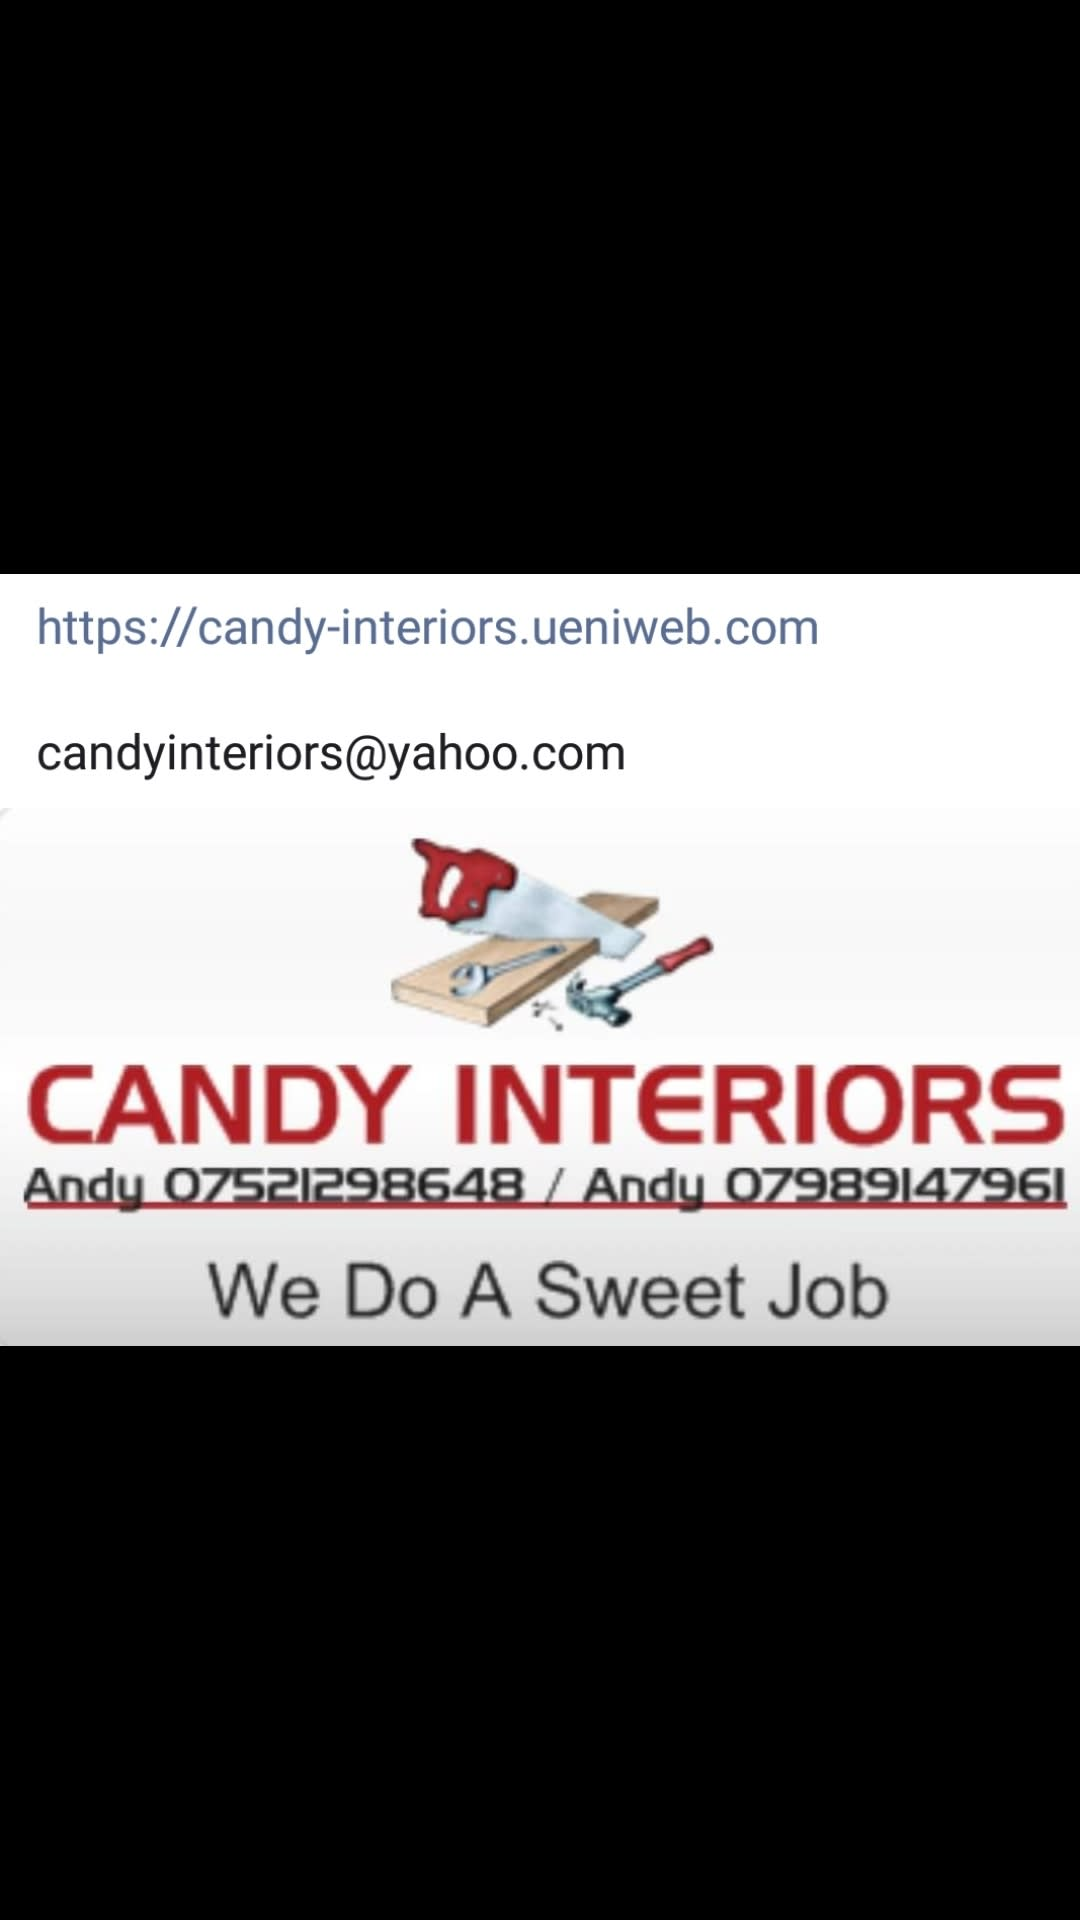 Candy Interiors